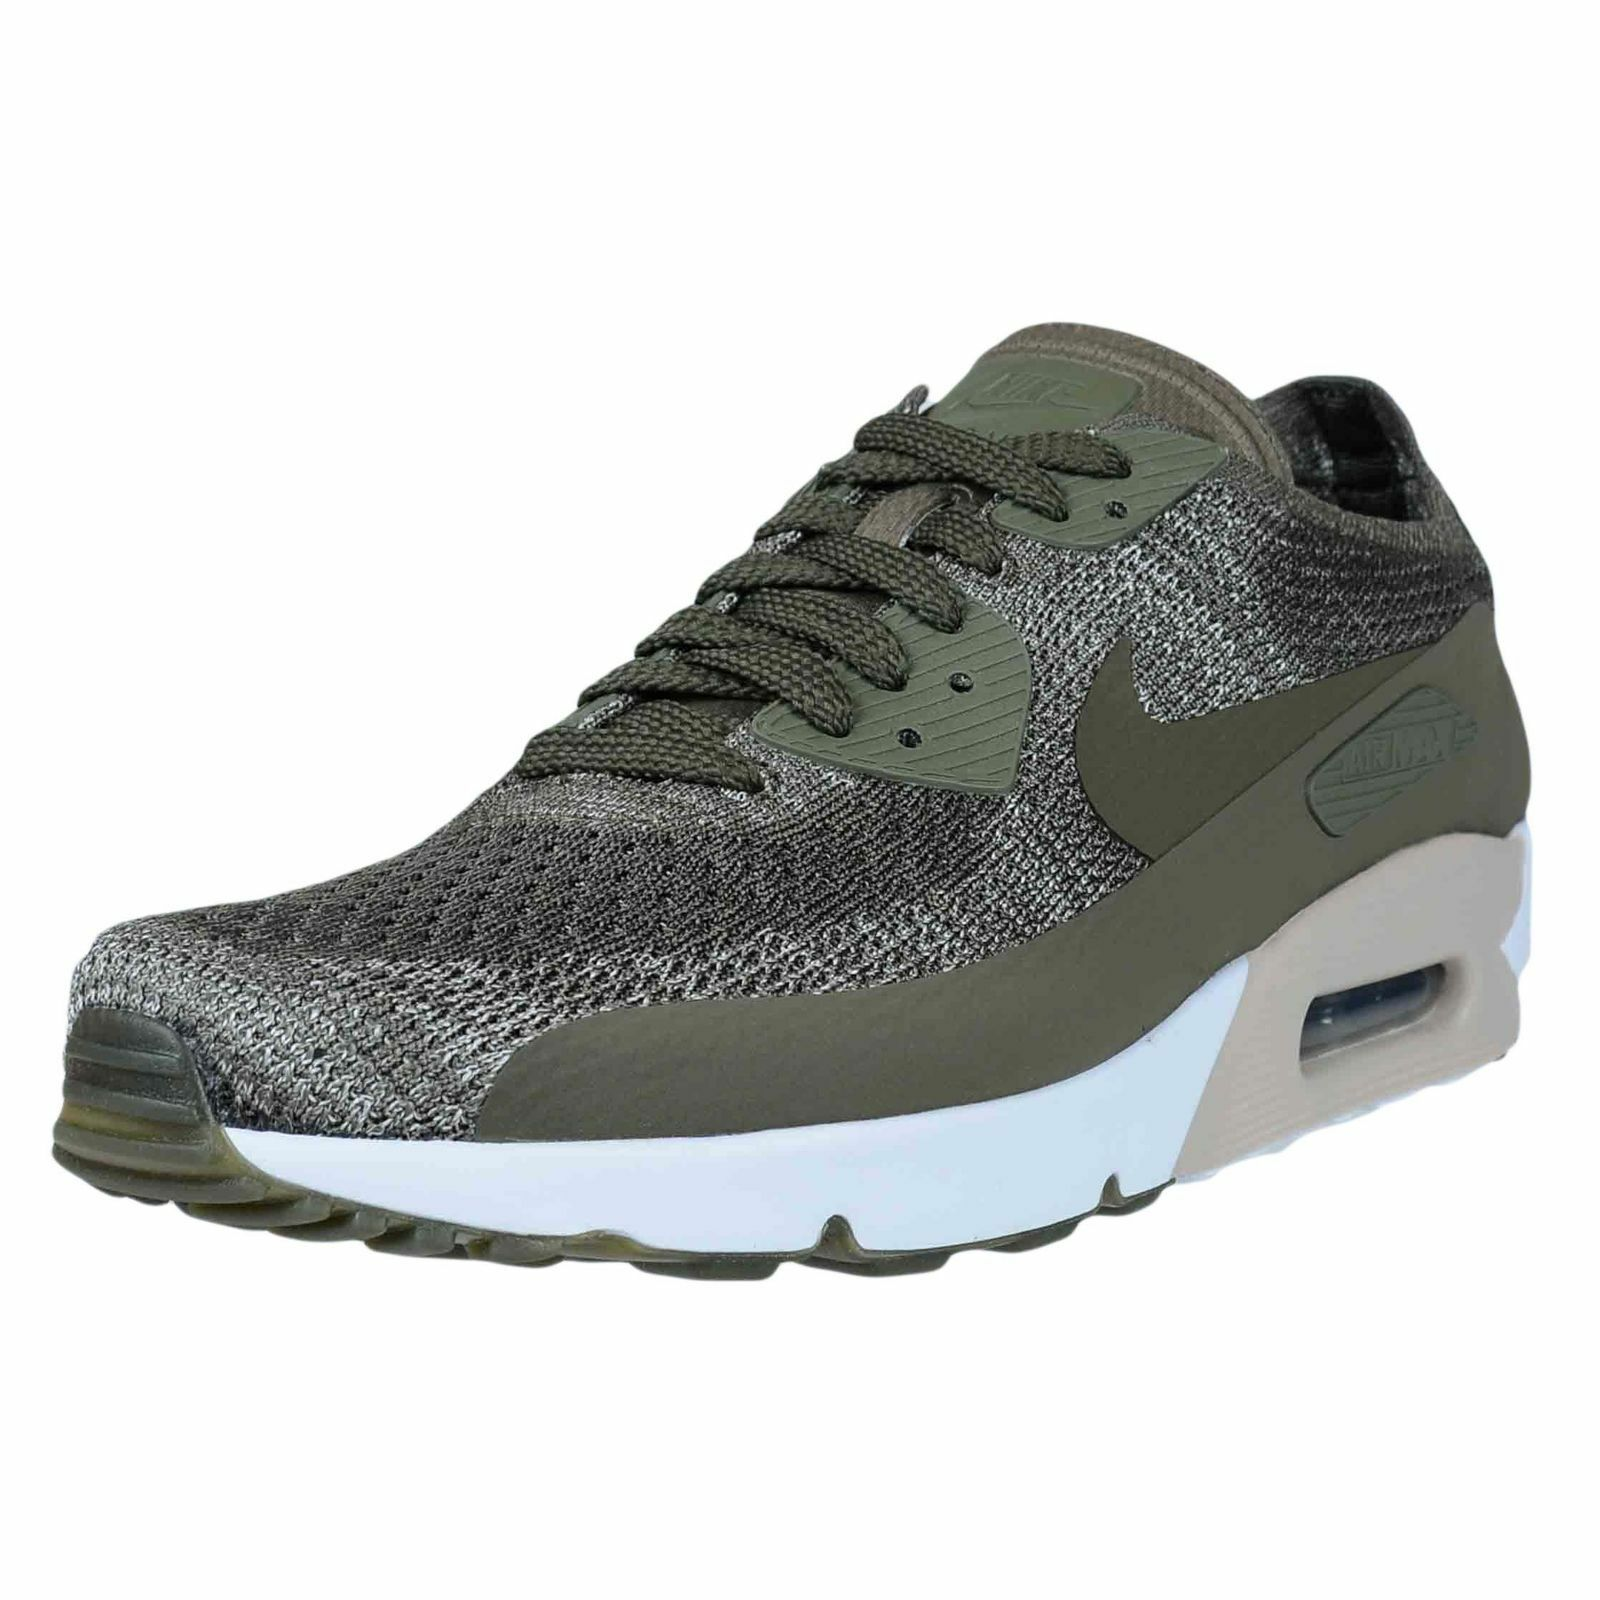 save off b3ace 76bbe New Nike Air Max 90 Ultra 2.0 Flyknit Men's Running Shoes Olive Green  875943 200